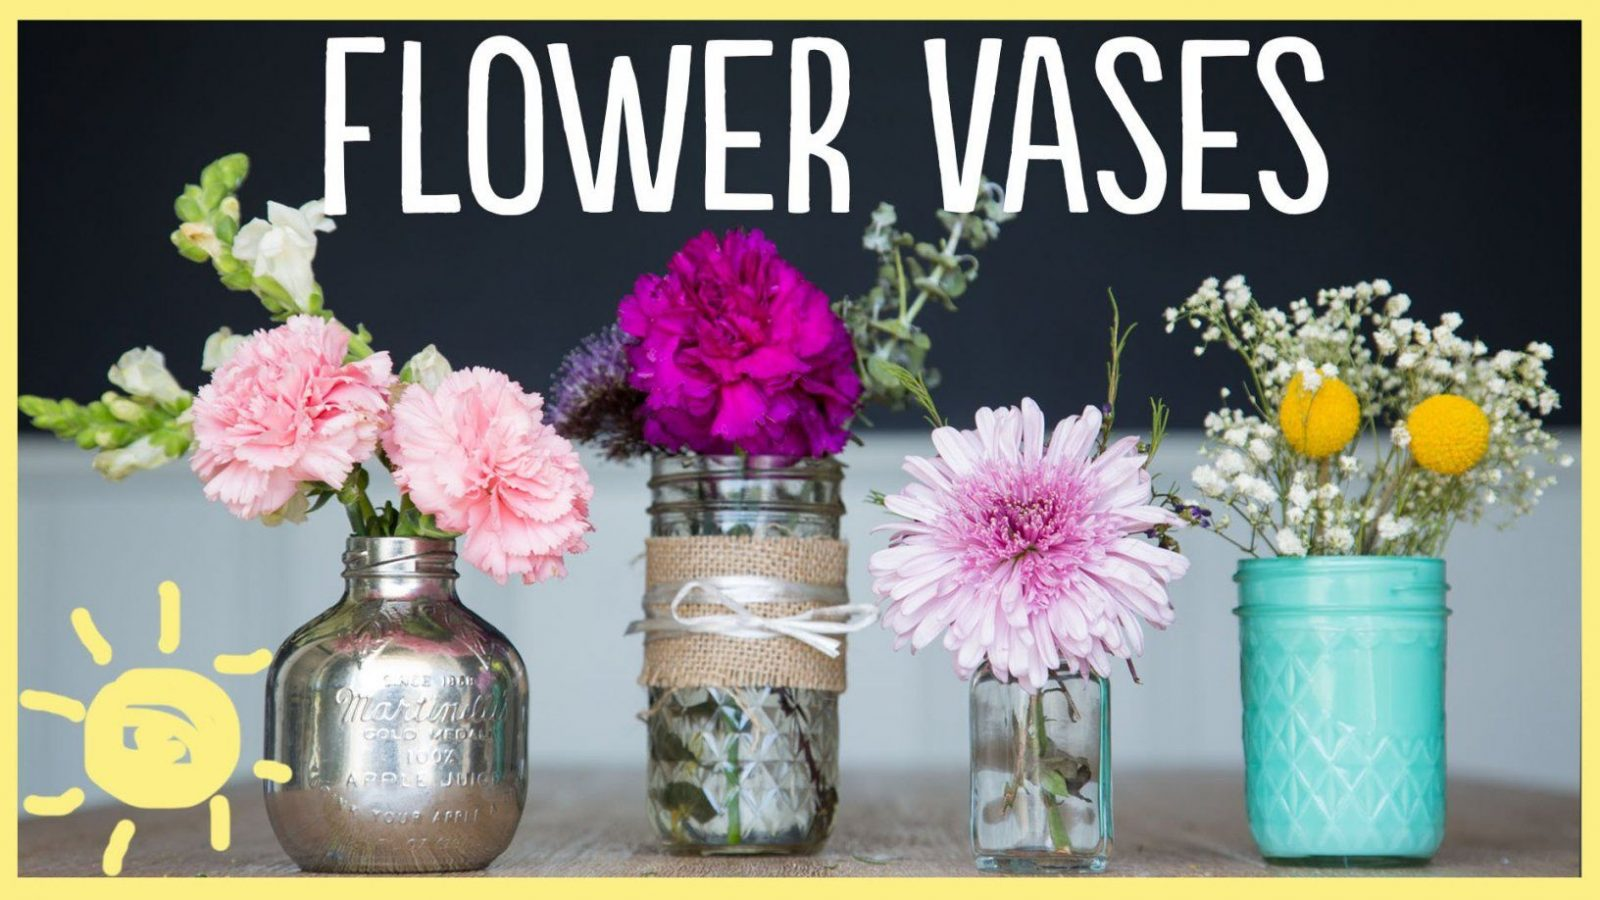 Diy  3 Gorgeous Flower Vases (So Easy)  Youtube von Mason Jar Flower Vases Bild